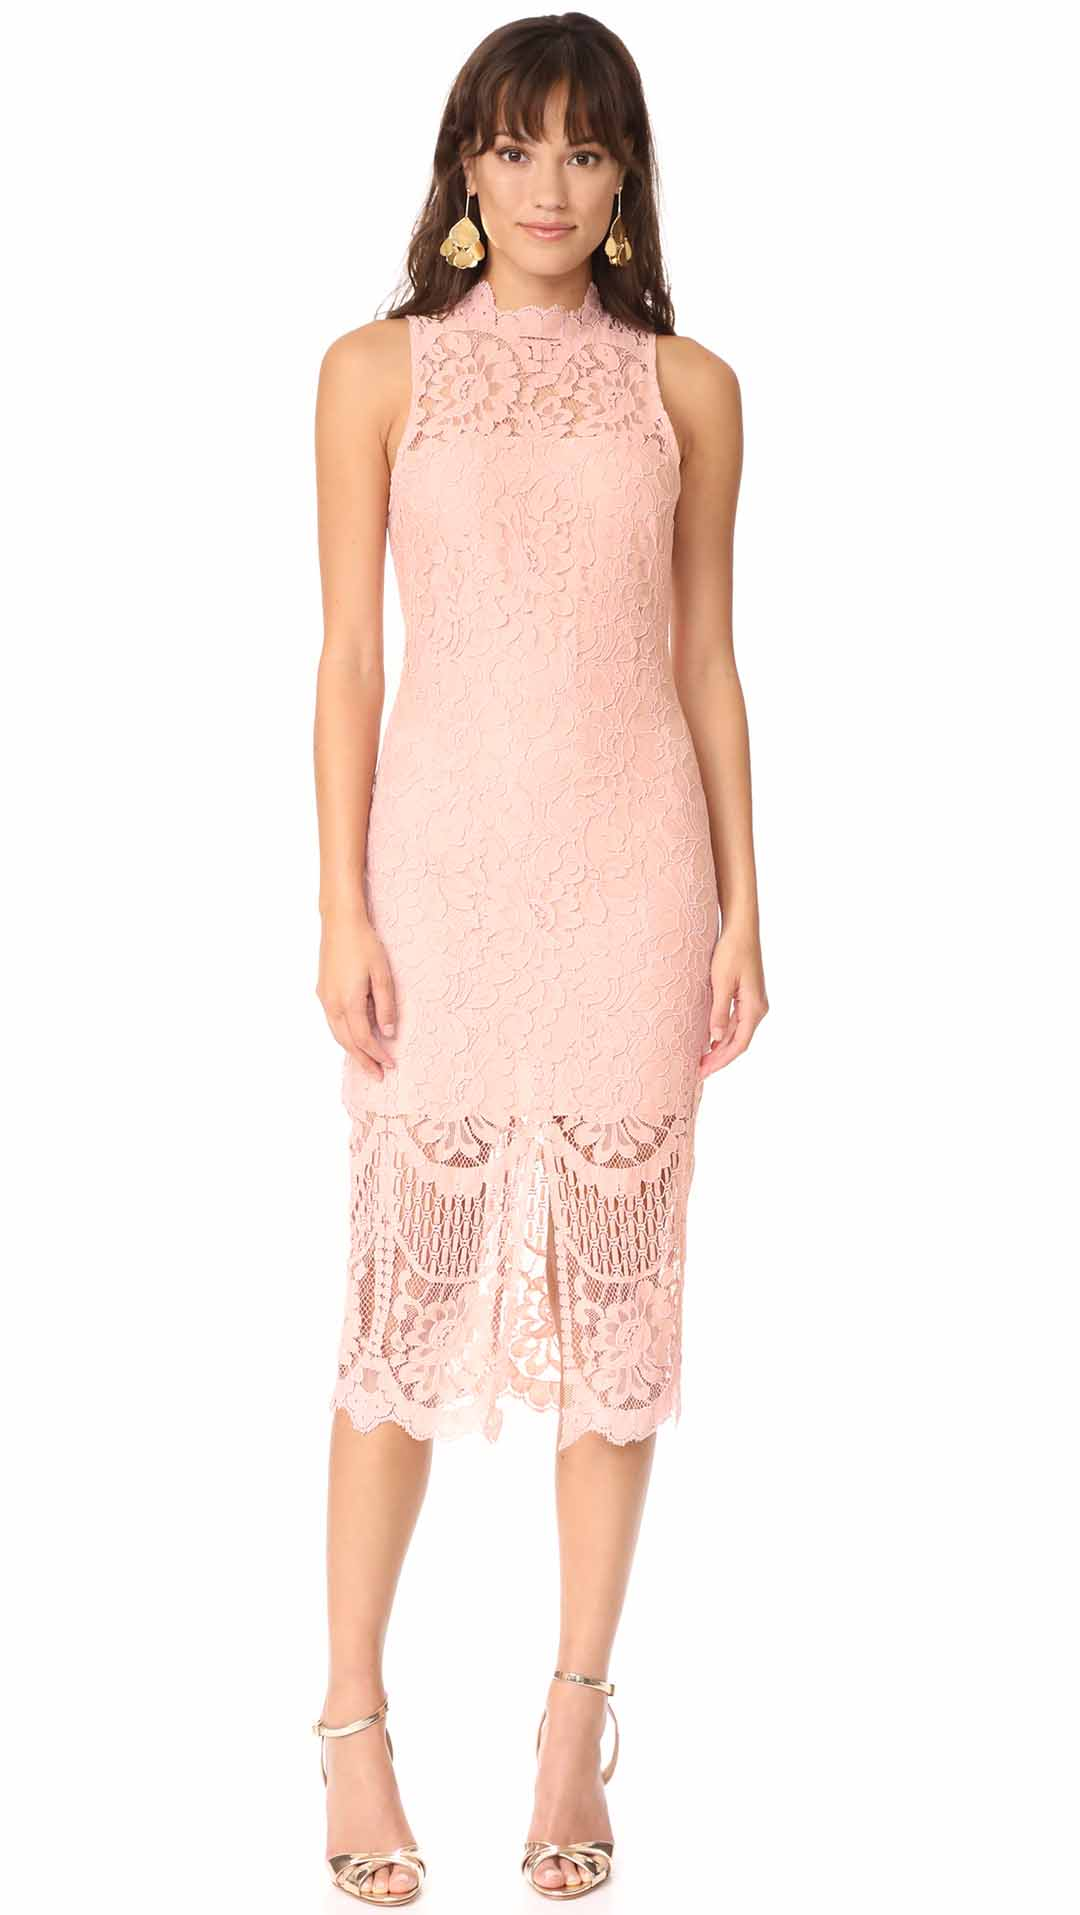 Trendy Lace Bodycon Dresses For Summer Wedding Guests 2017 Style